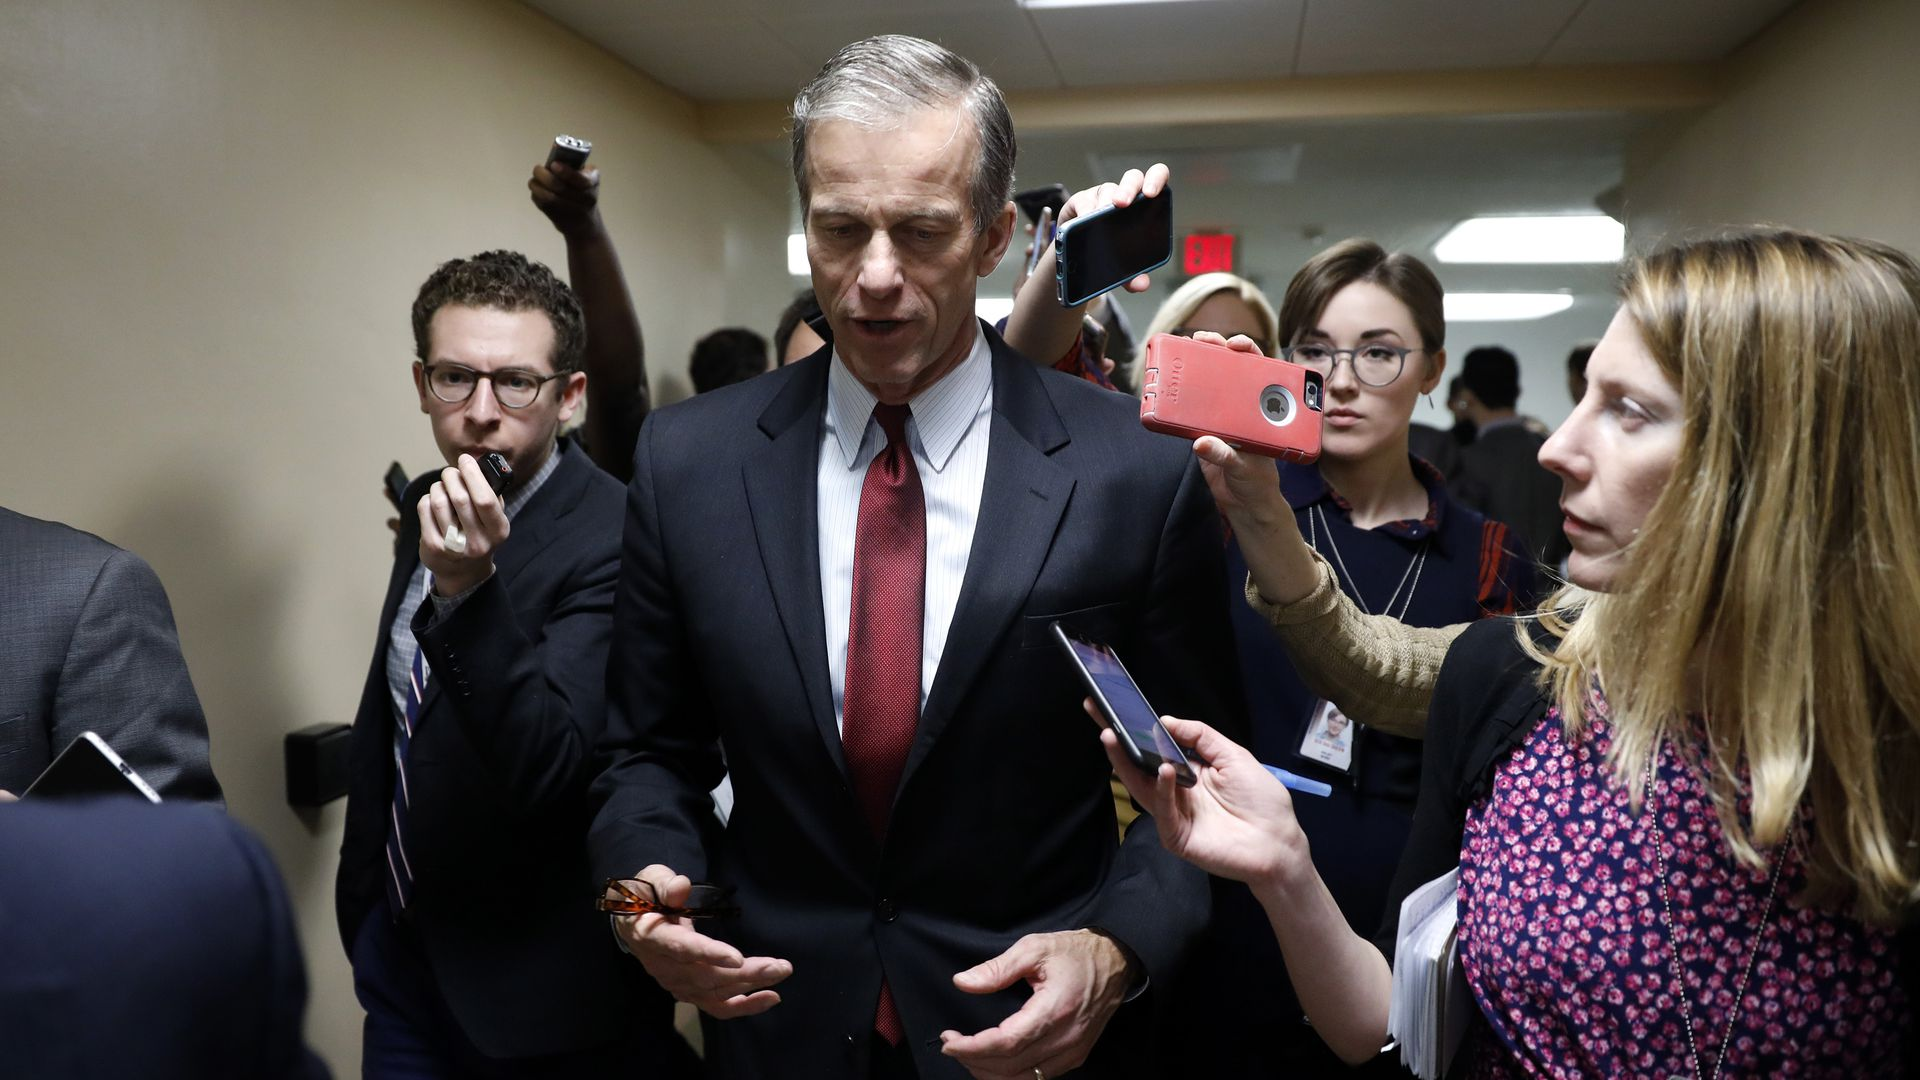 Senator John Thune walks in a suit as reporters follow him asking questions